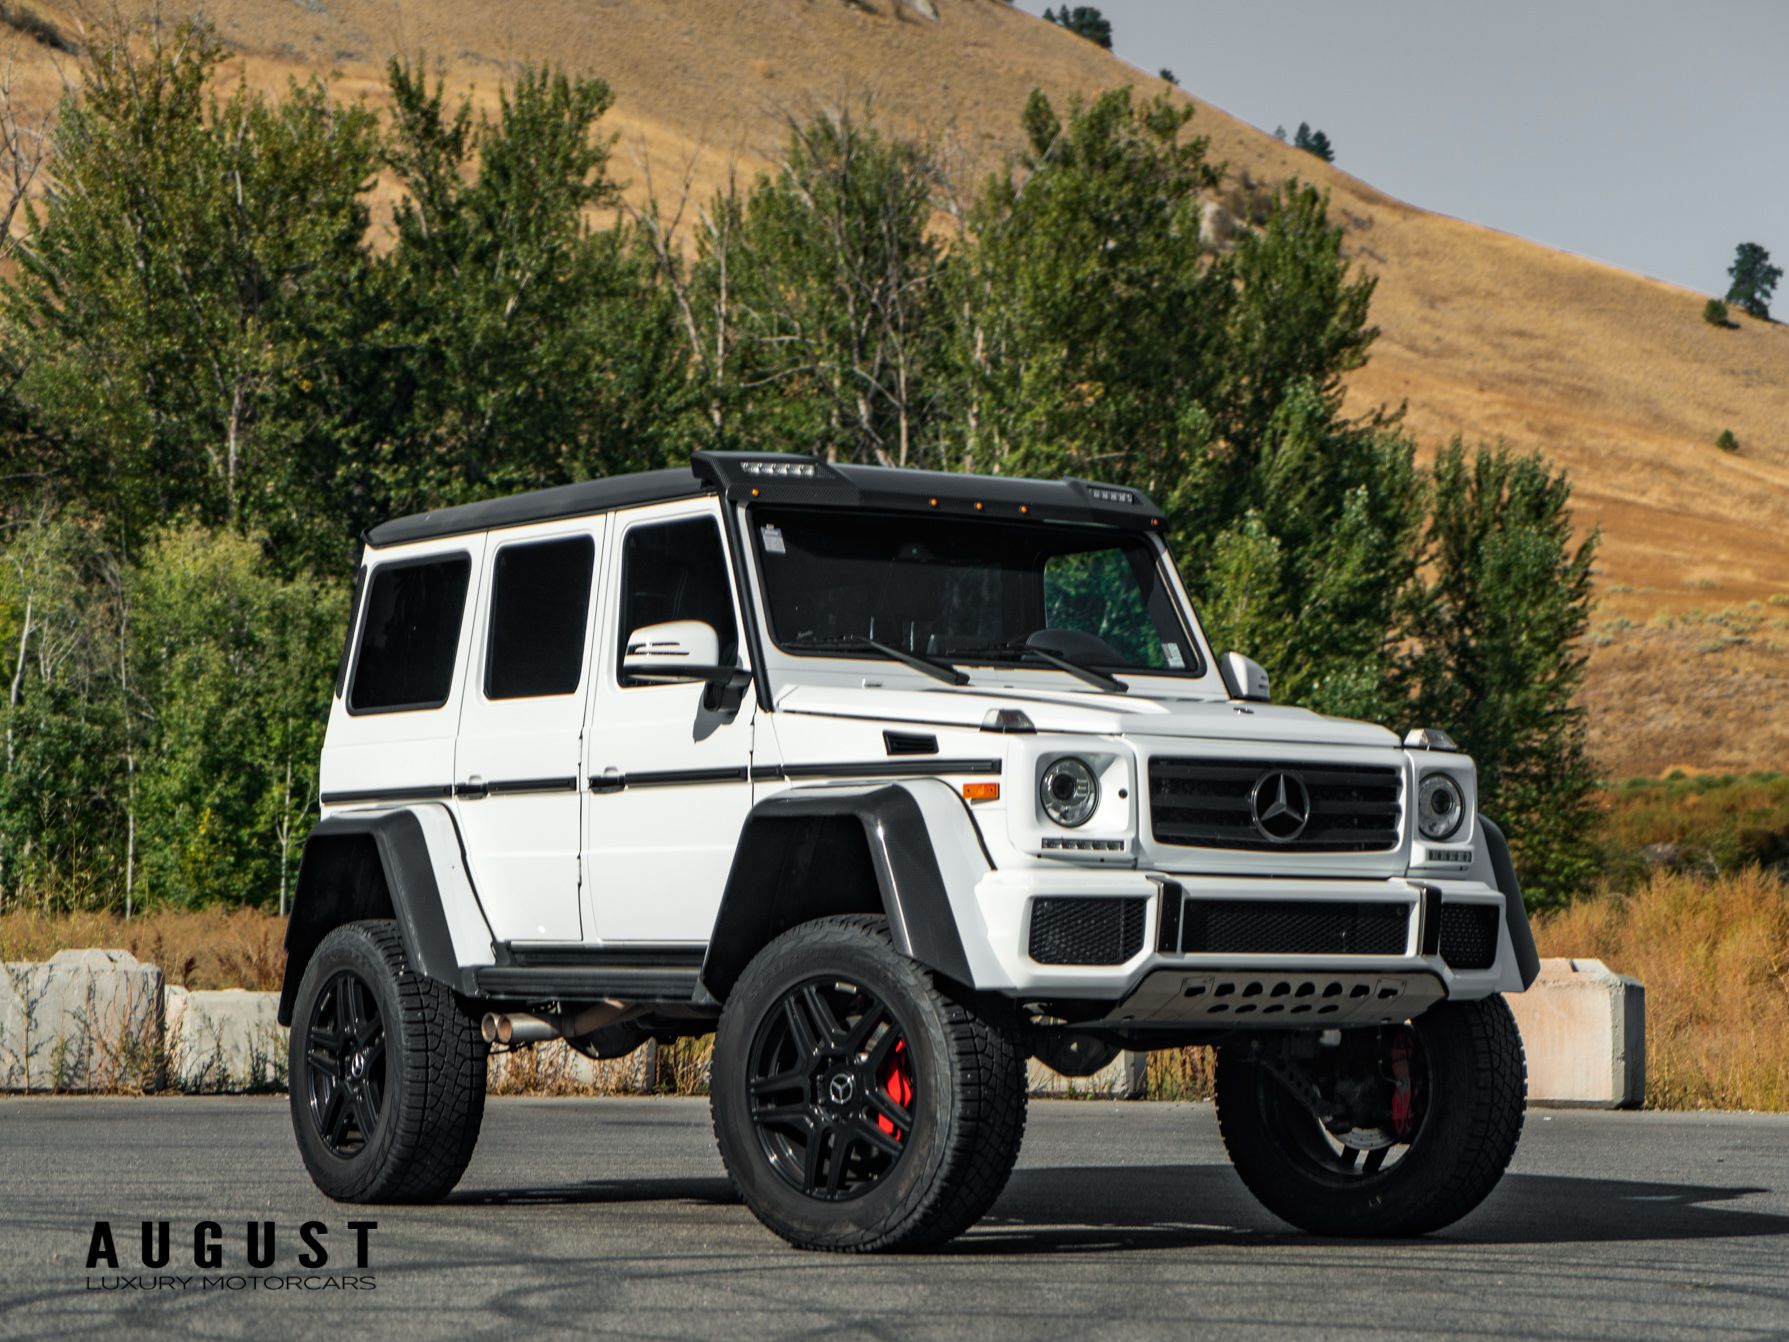 Pre Owned 2017 Mercedes Benz G Class G 550 4x4 Squared In Kelowna Bc Canada Aco 1469 August Luxury Motorcars